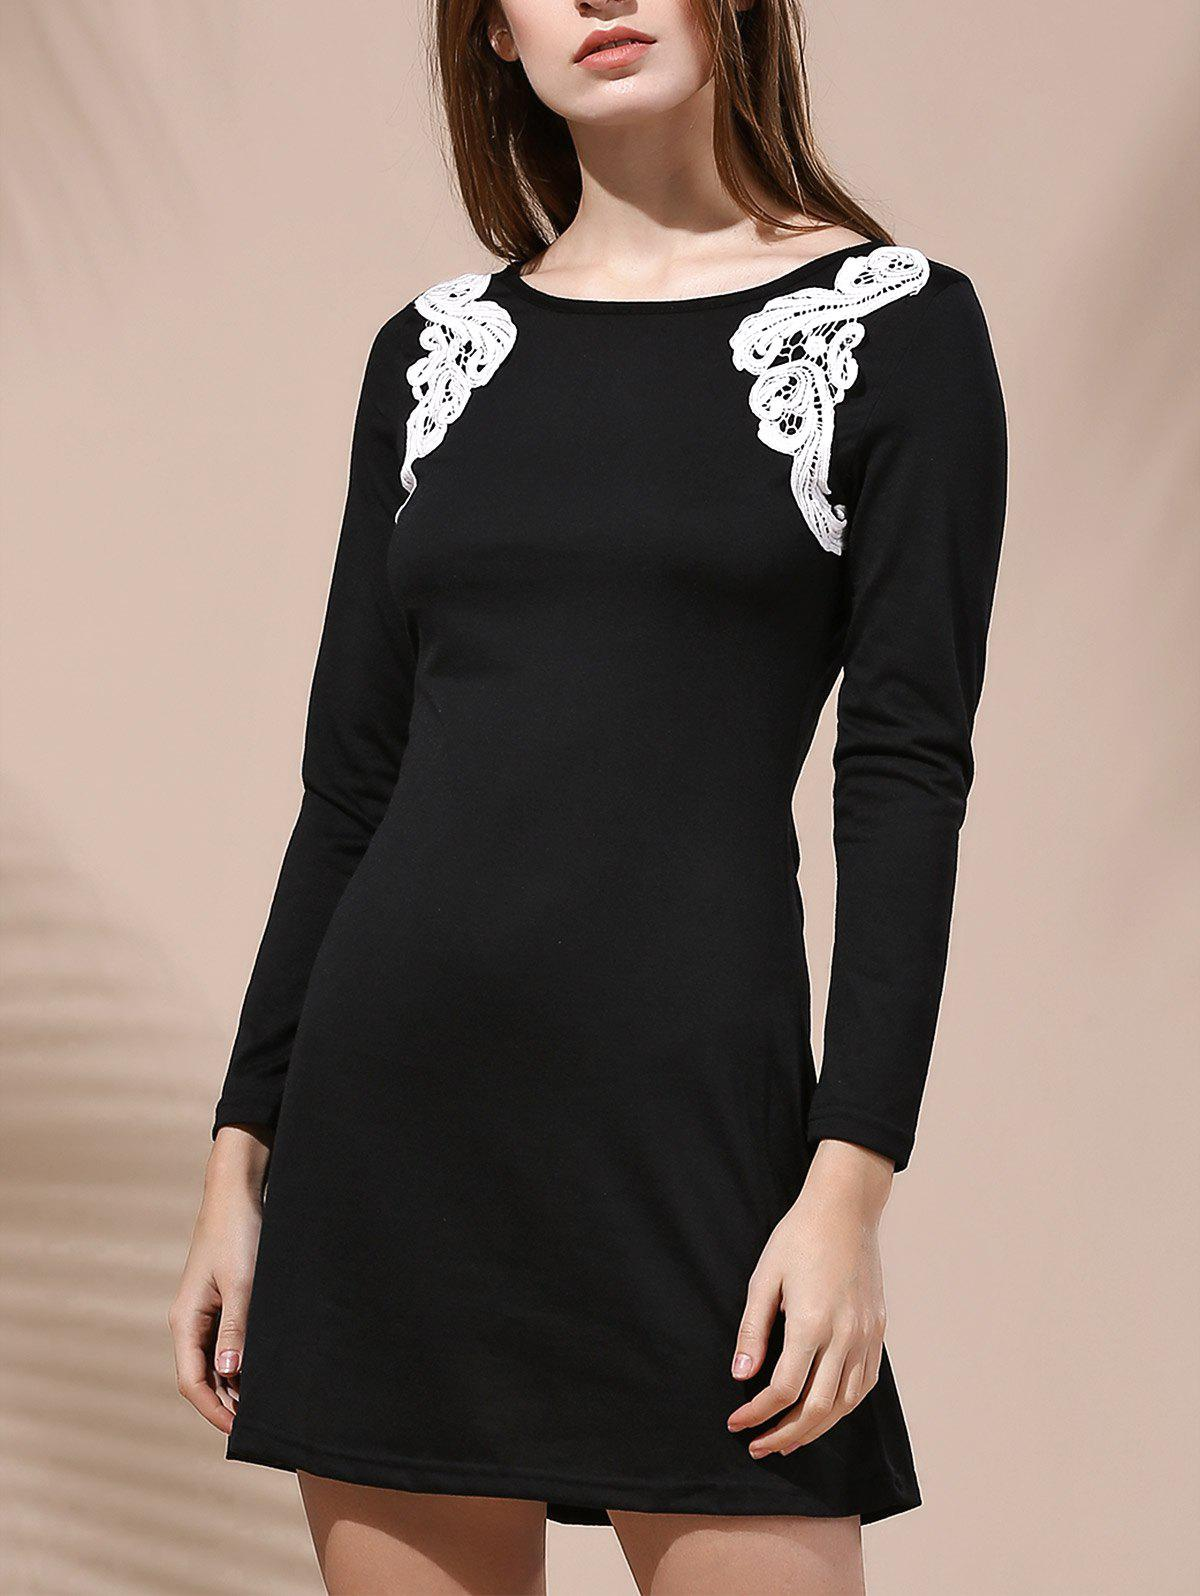 Stylish Women's Round Collar Long Sleeve Patch Lace Design Dress - BLACK S